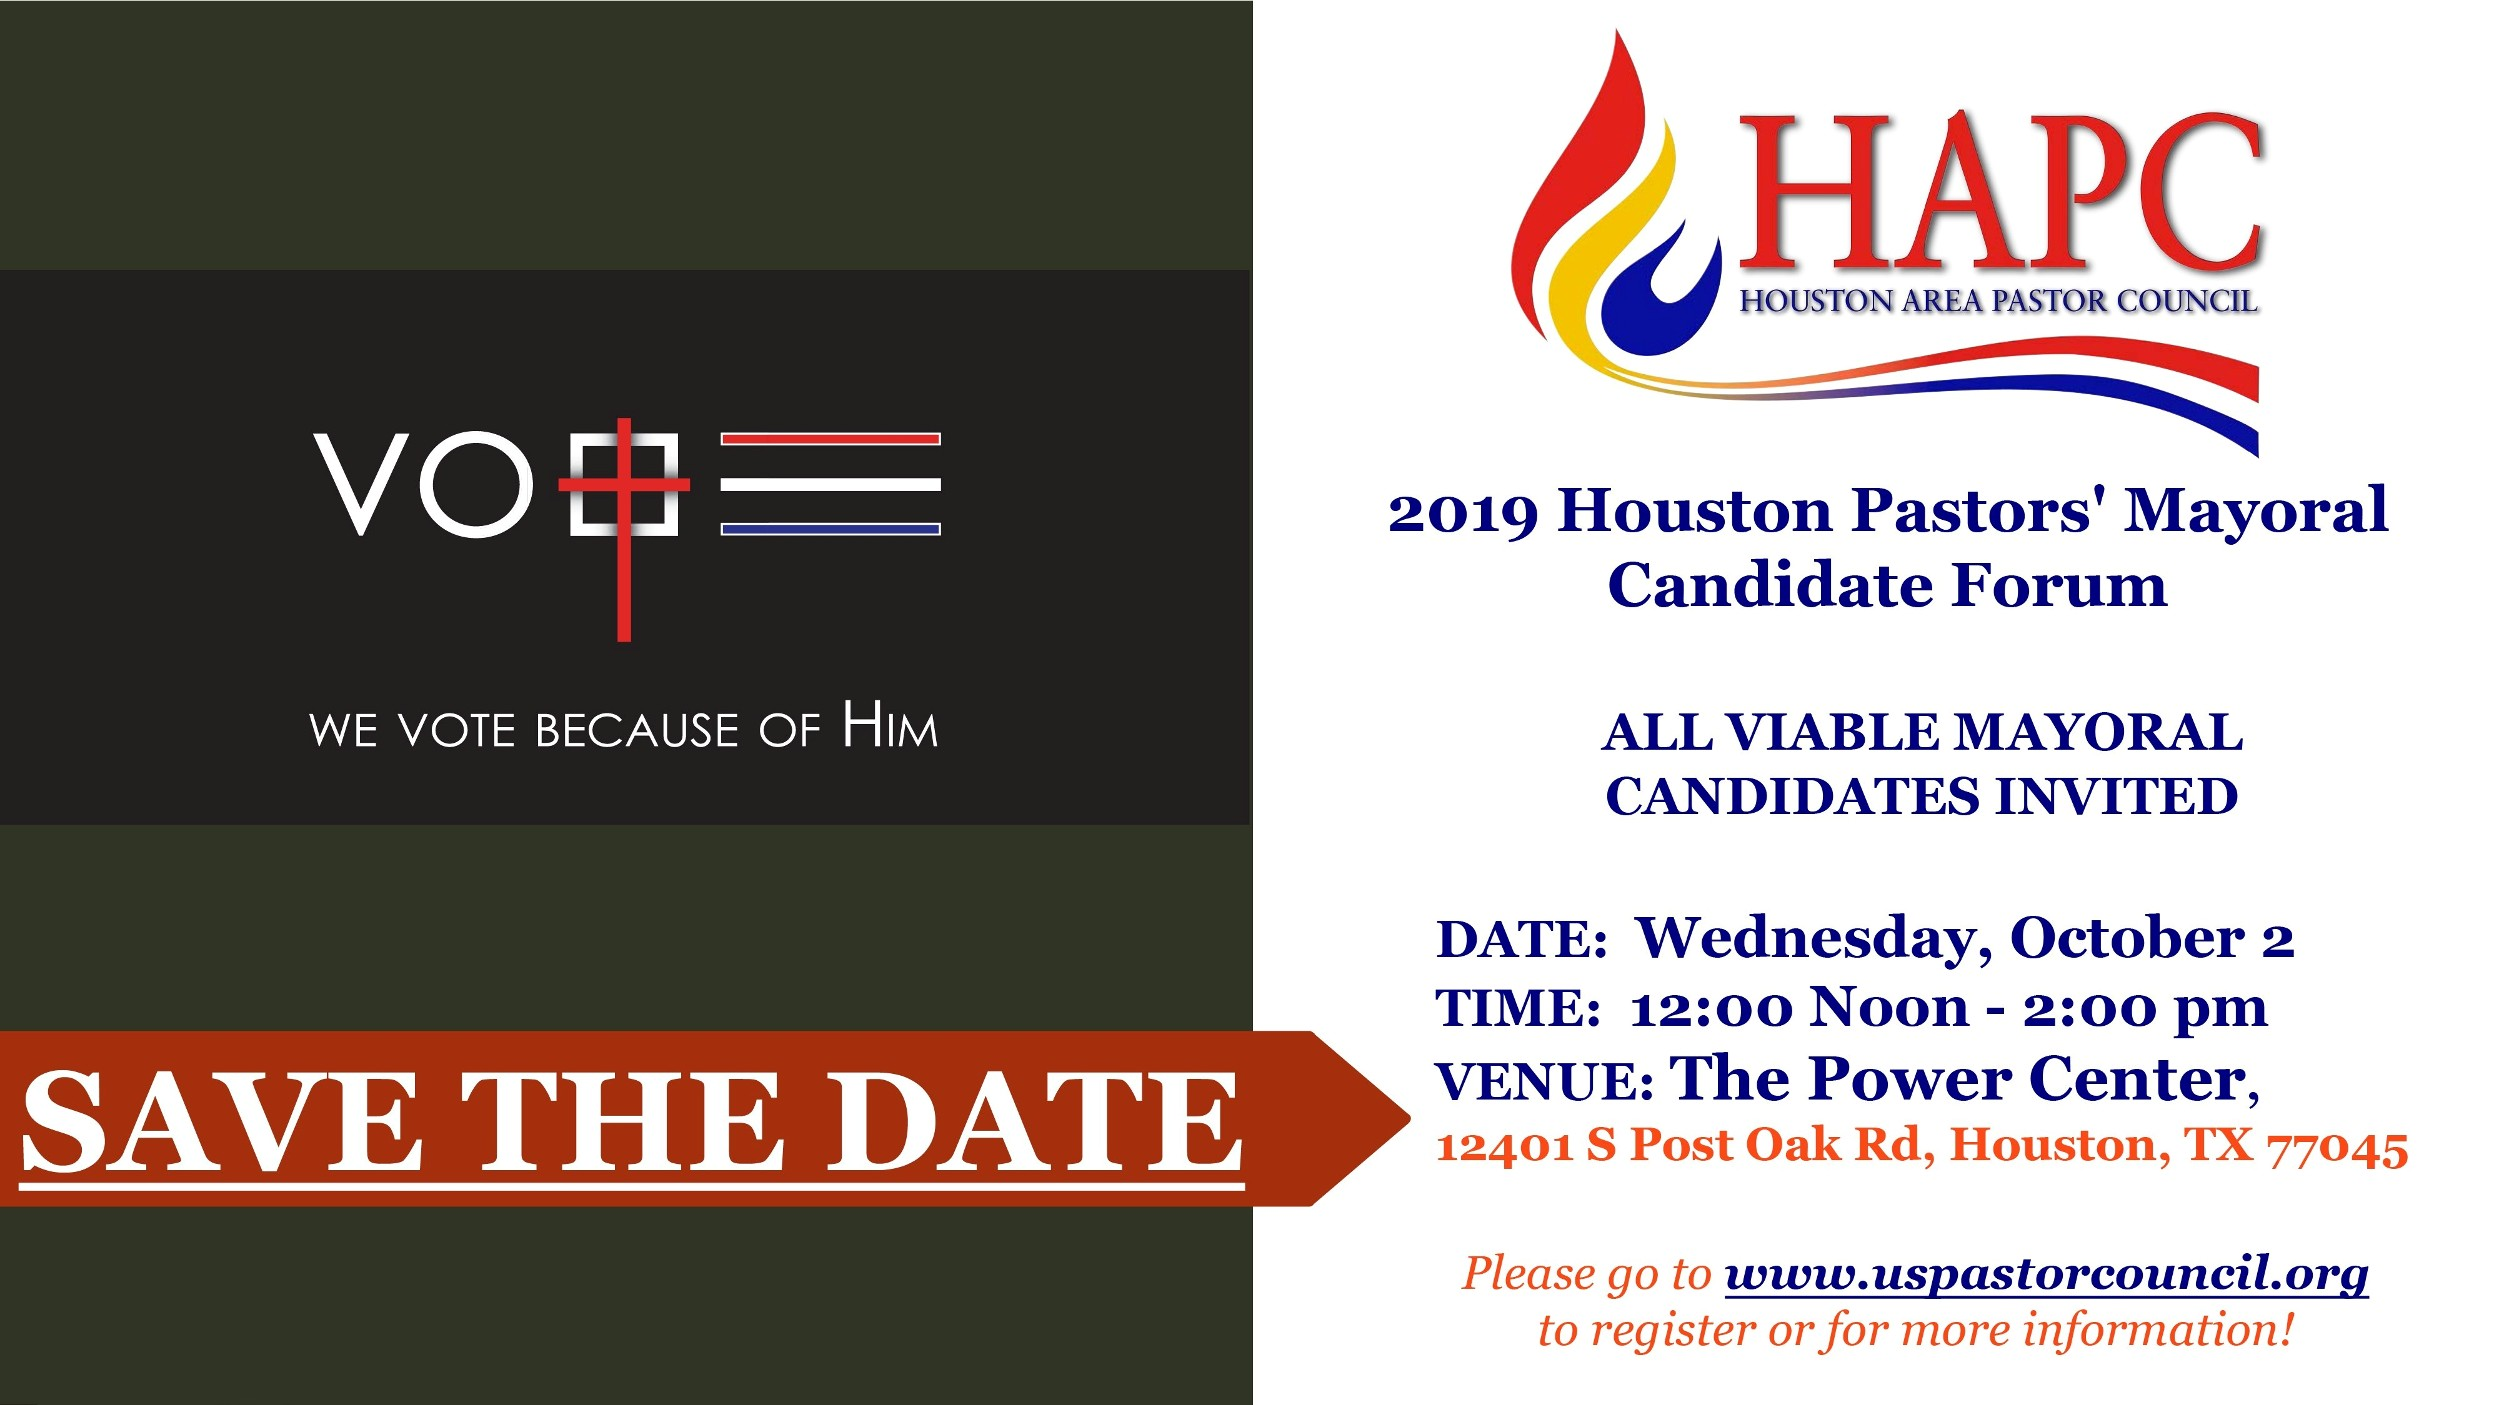 2019 Houston Pastors' Mayoral Candidate Forum